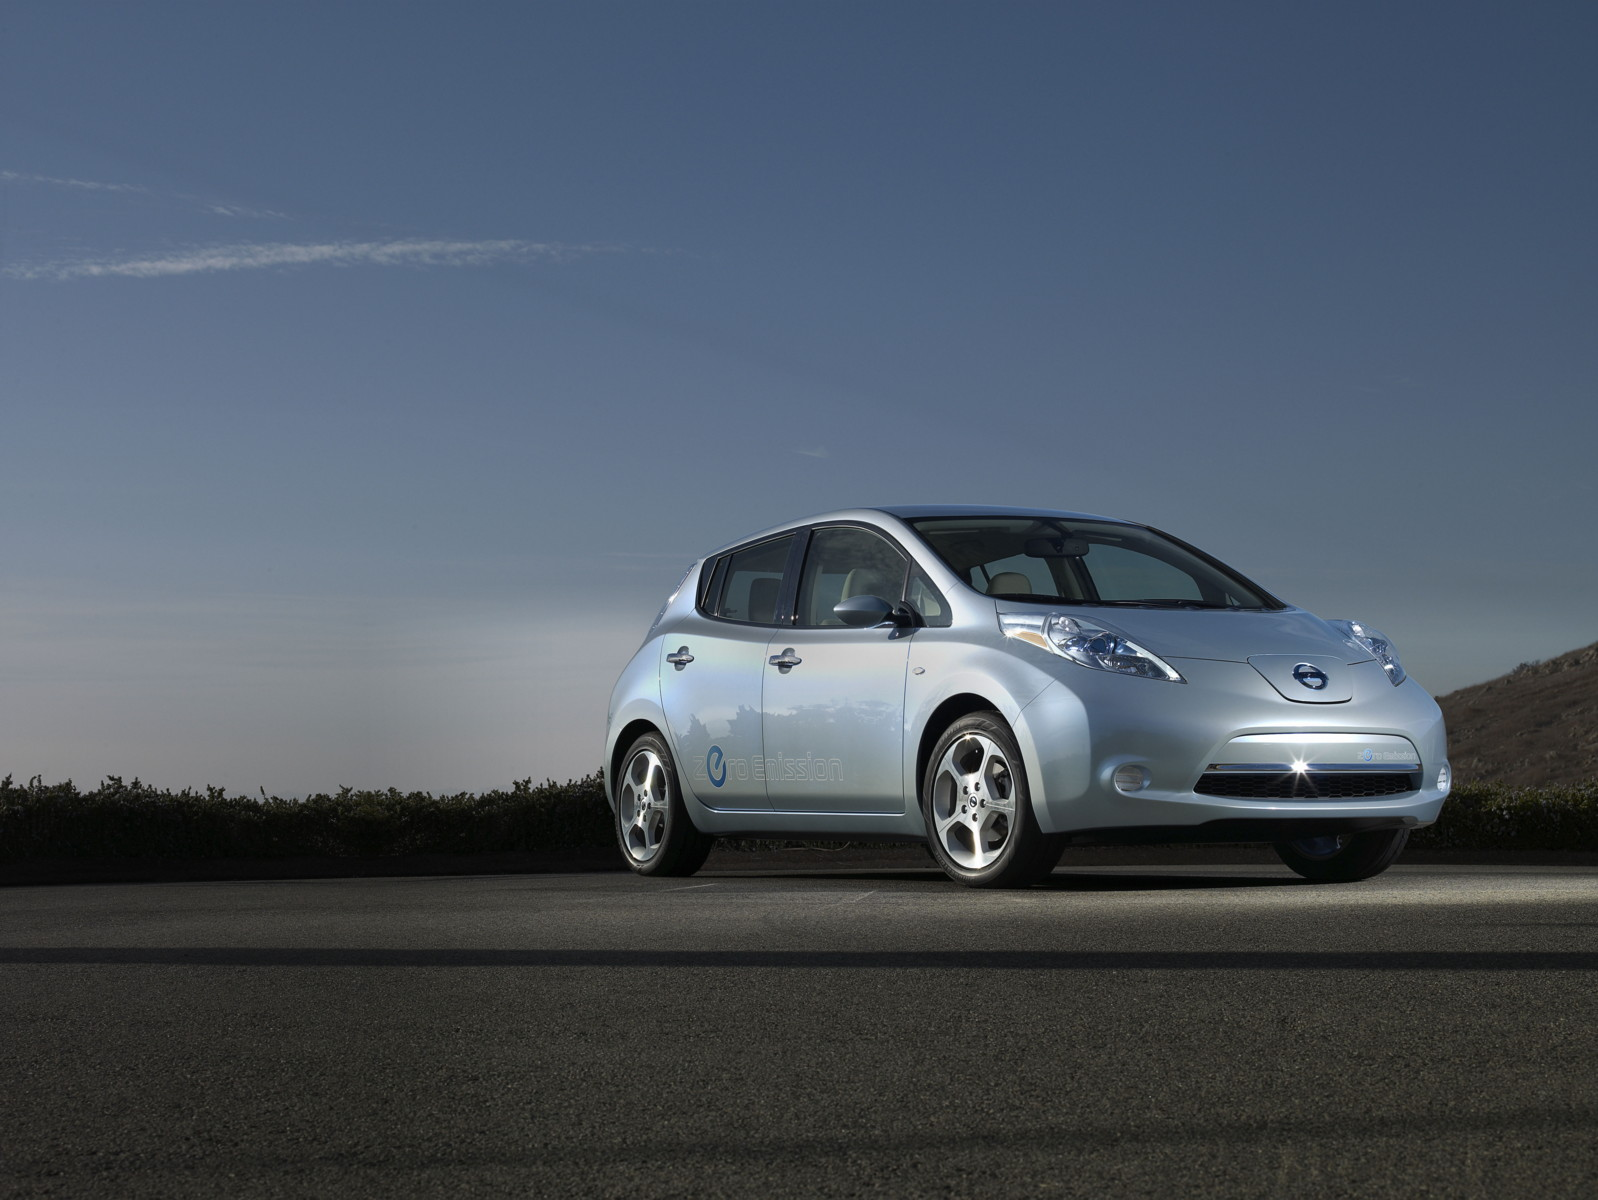 Third Factory For 2011 Nissan Leaf Production Is Smart Move In EV ...